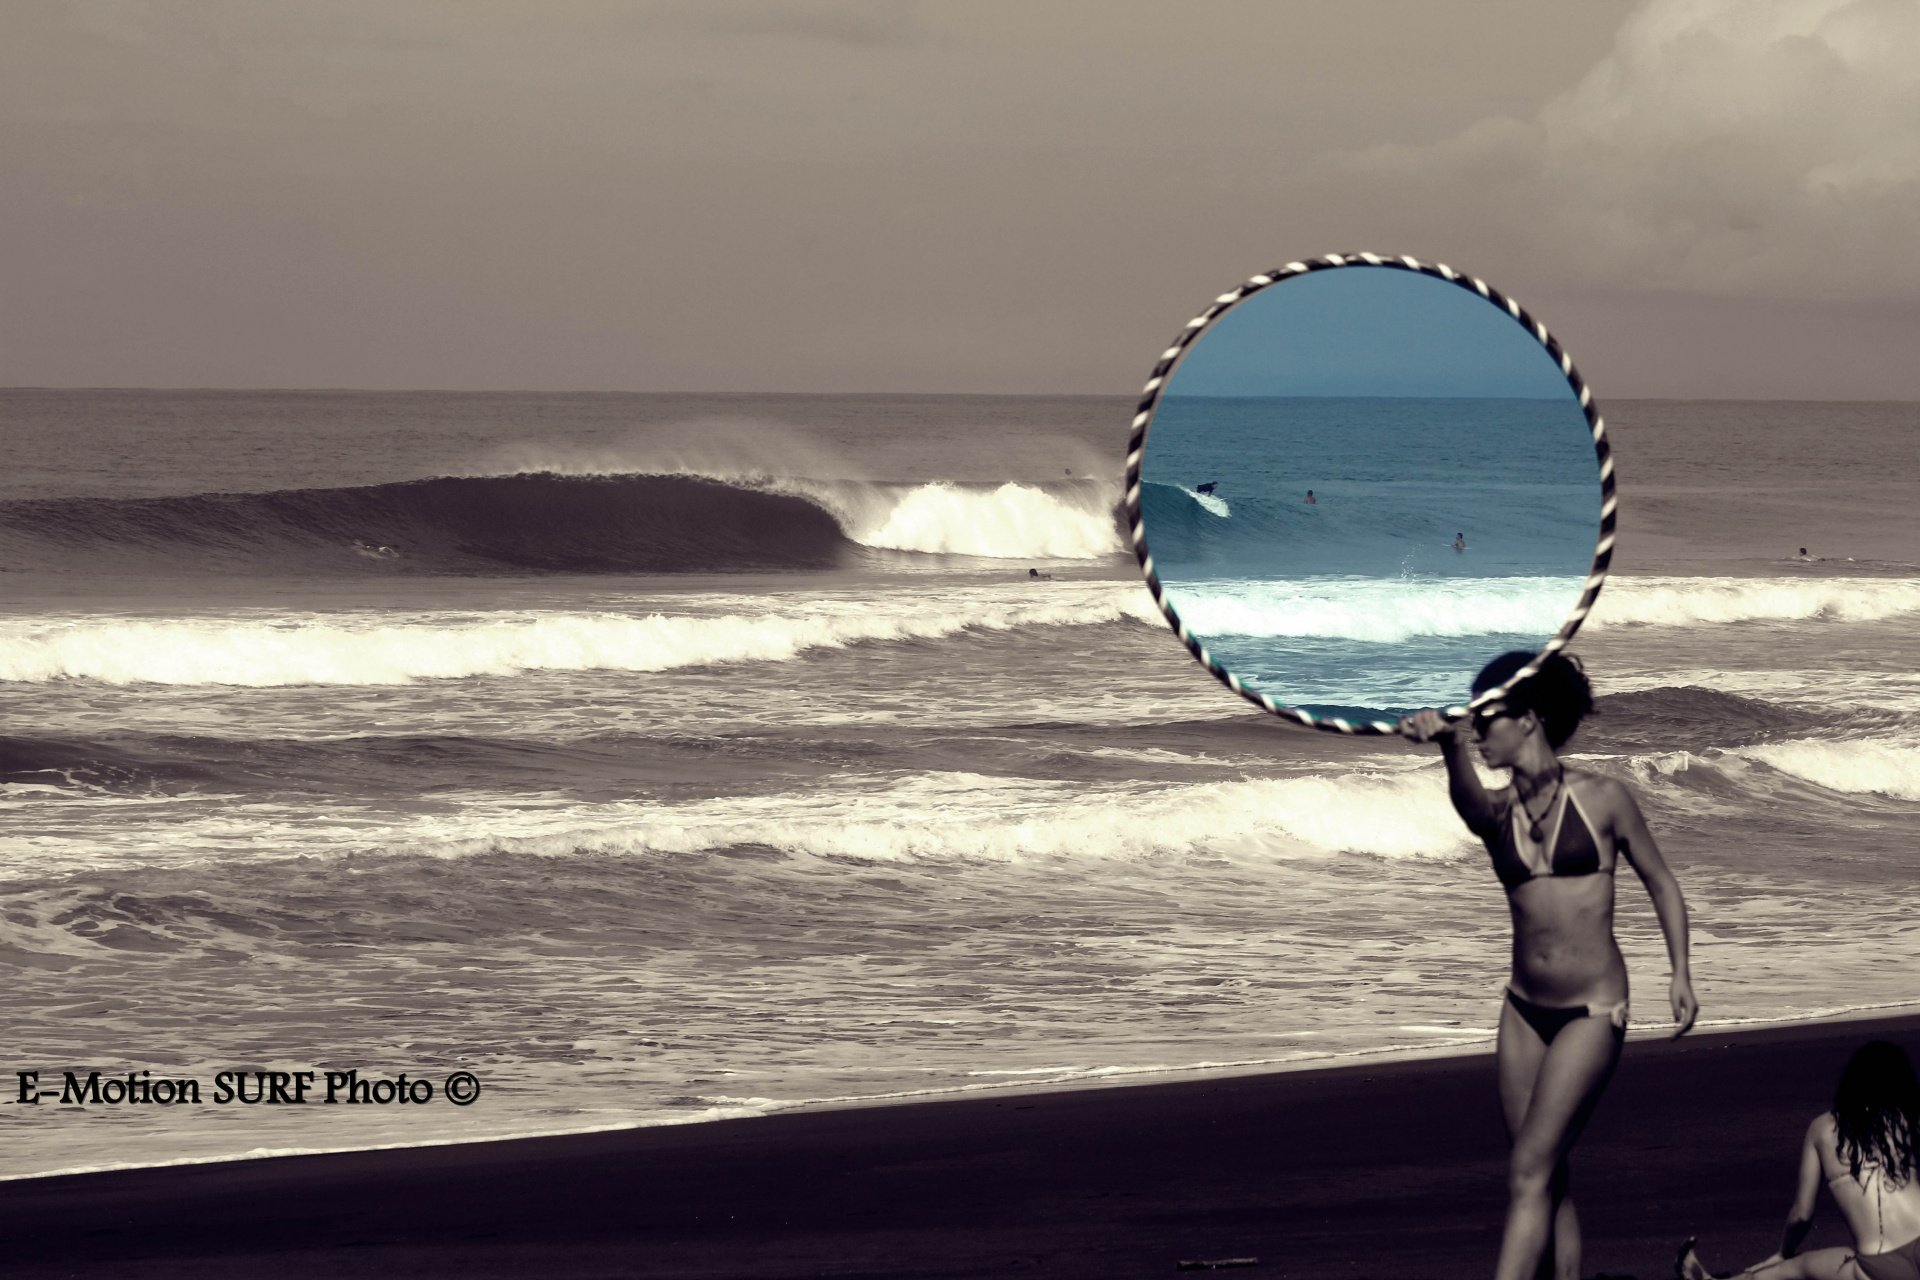 E-Motion SURF Photo's photo of Playa Hermosa